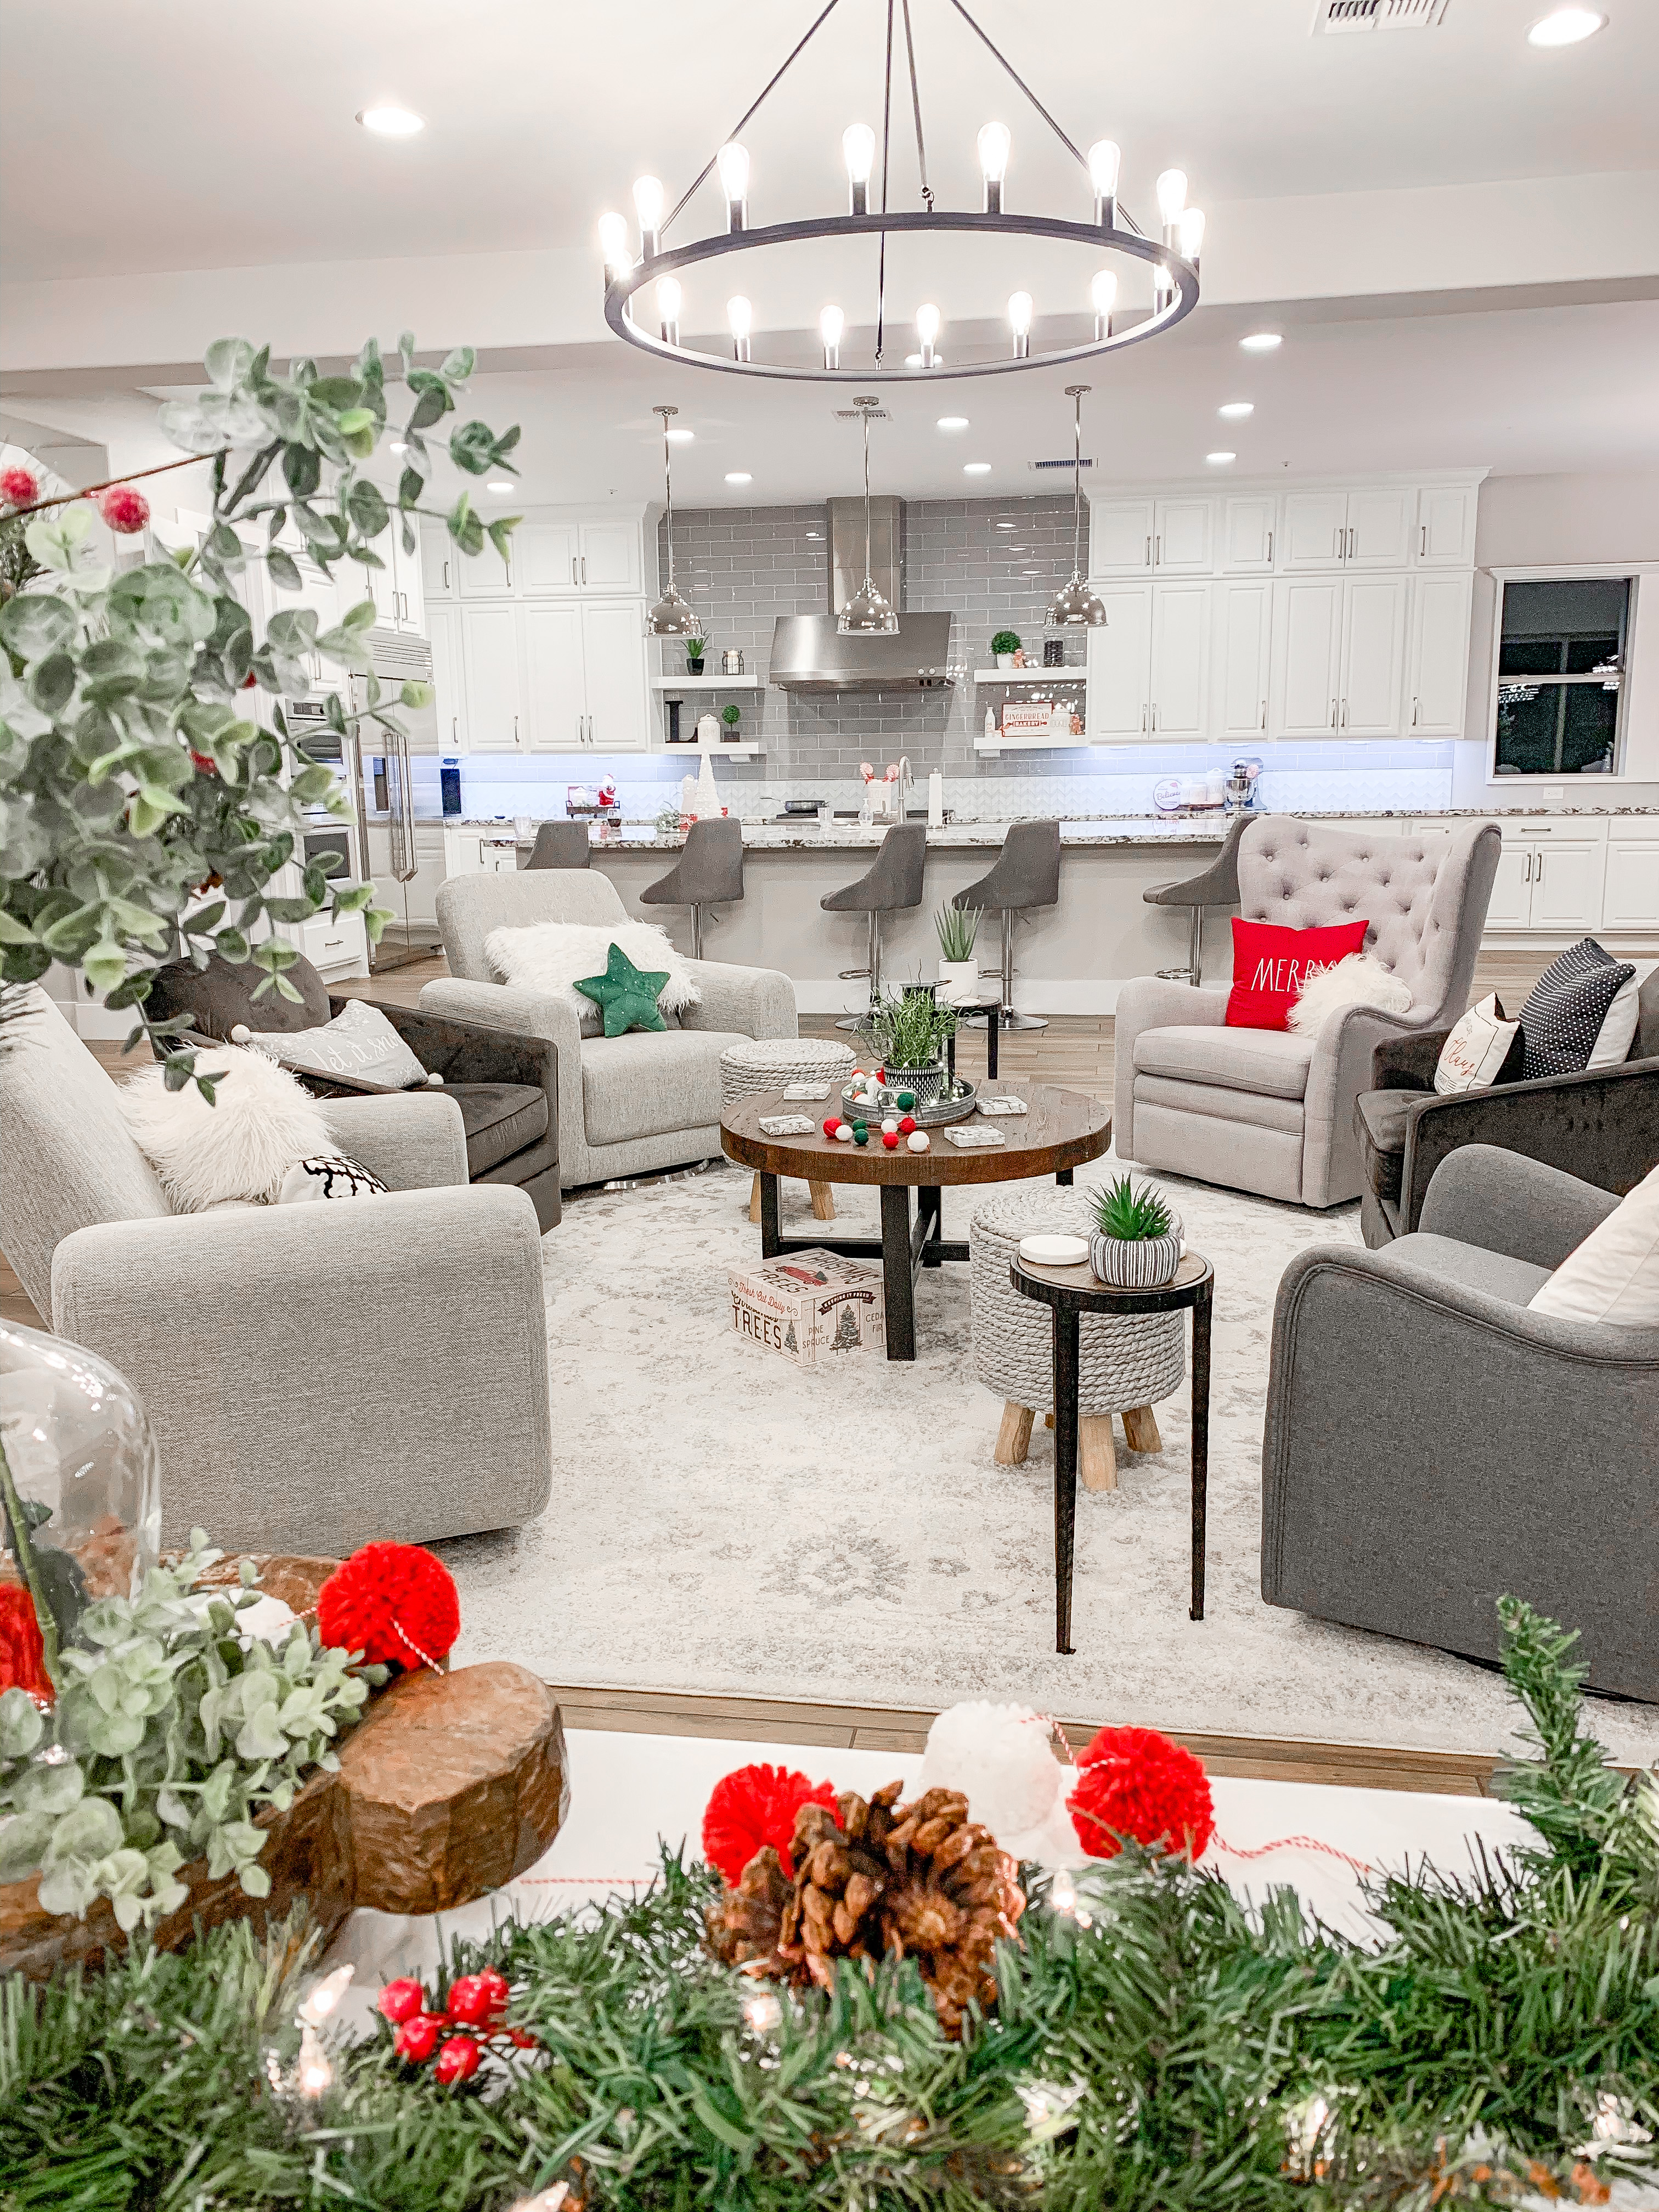 Modern Farmhouse Glam living room furniture, area rug, Christmas decorations, lighting, coffee table, accent table, kitchen bar stool